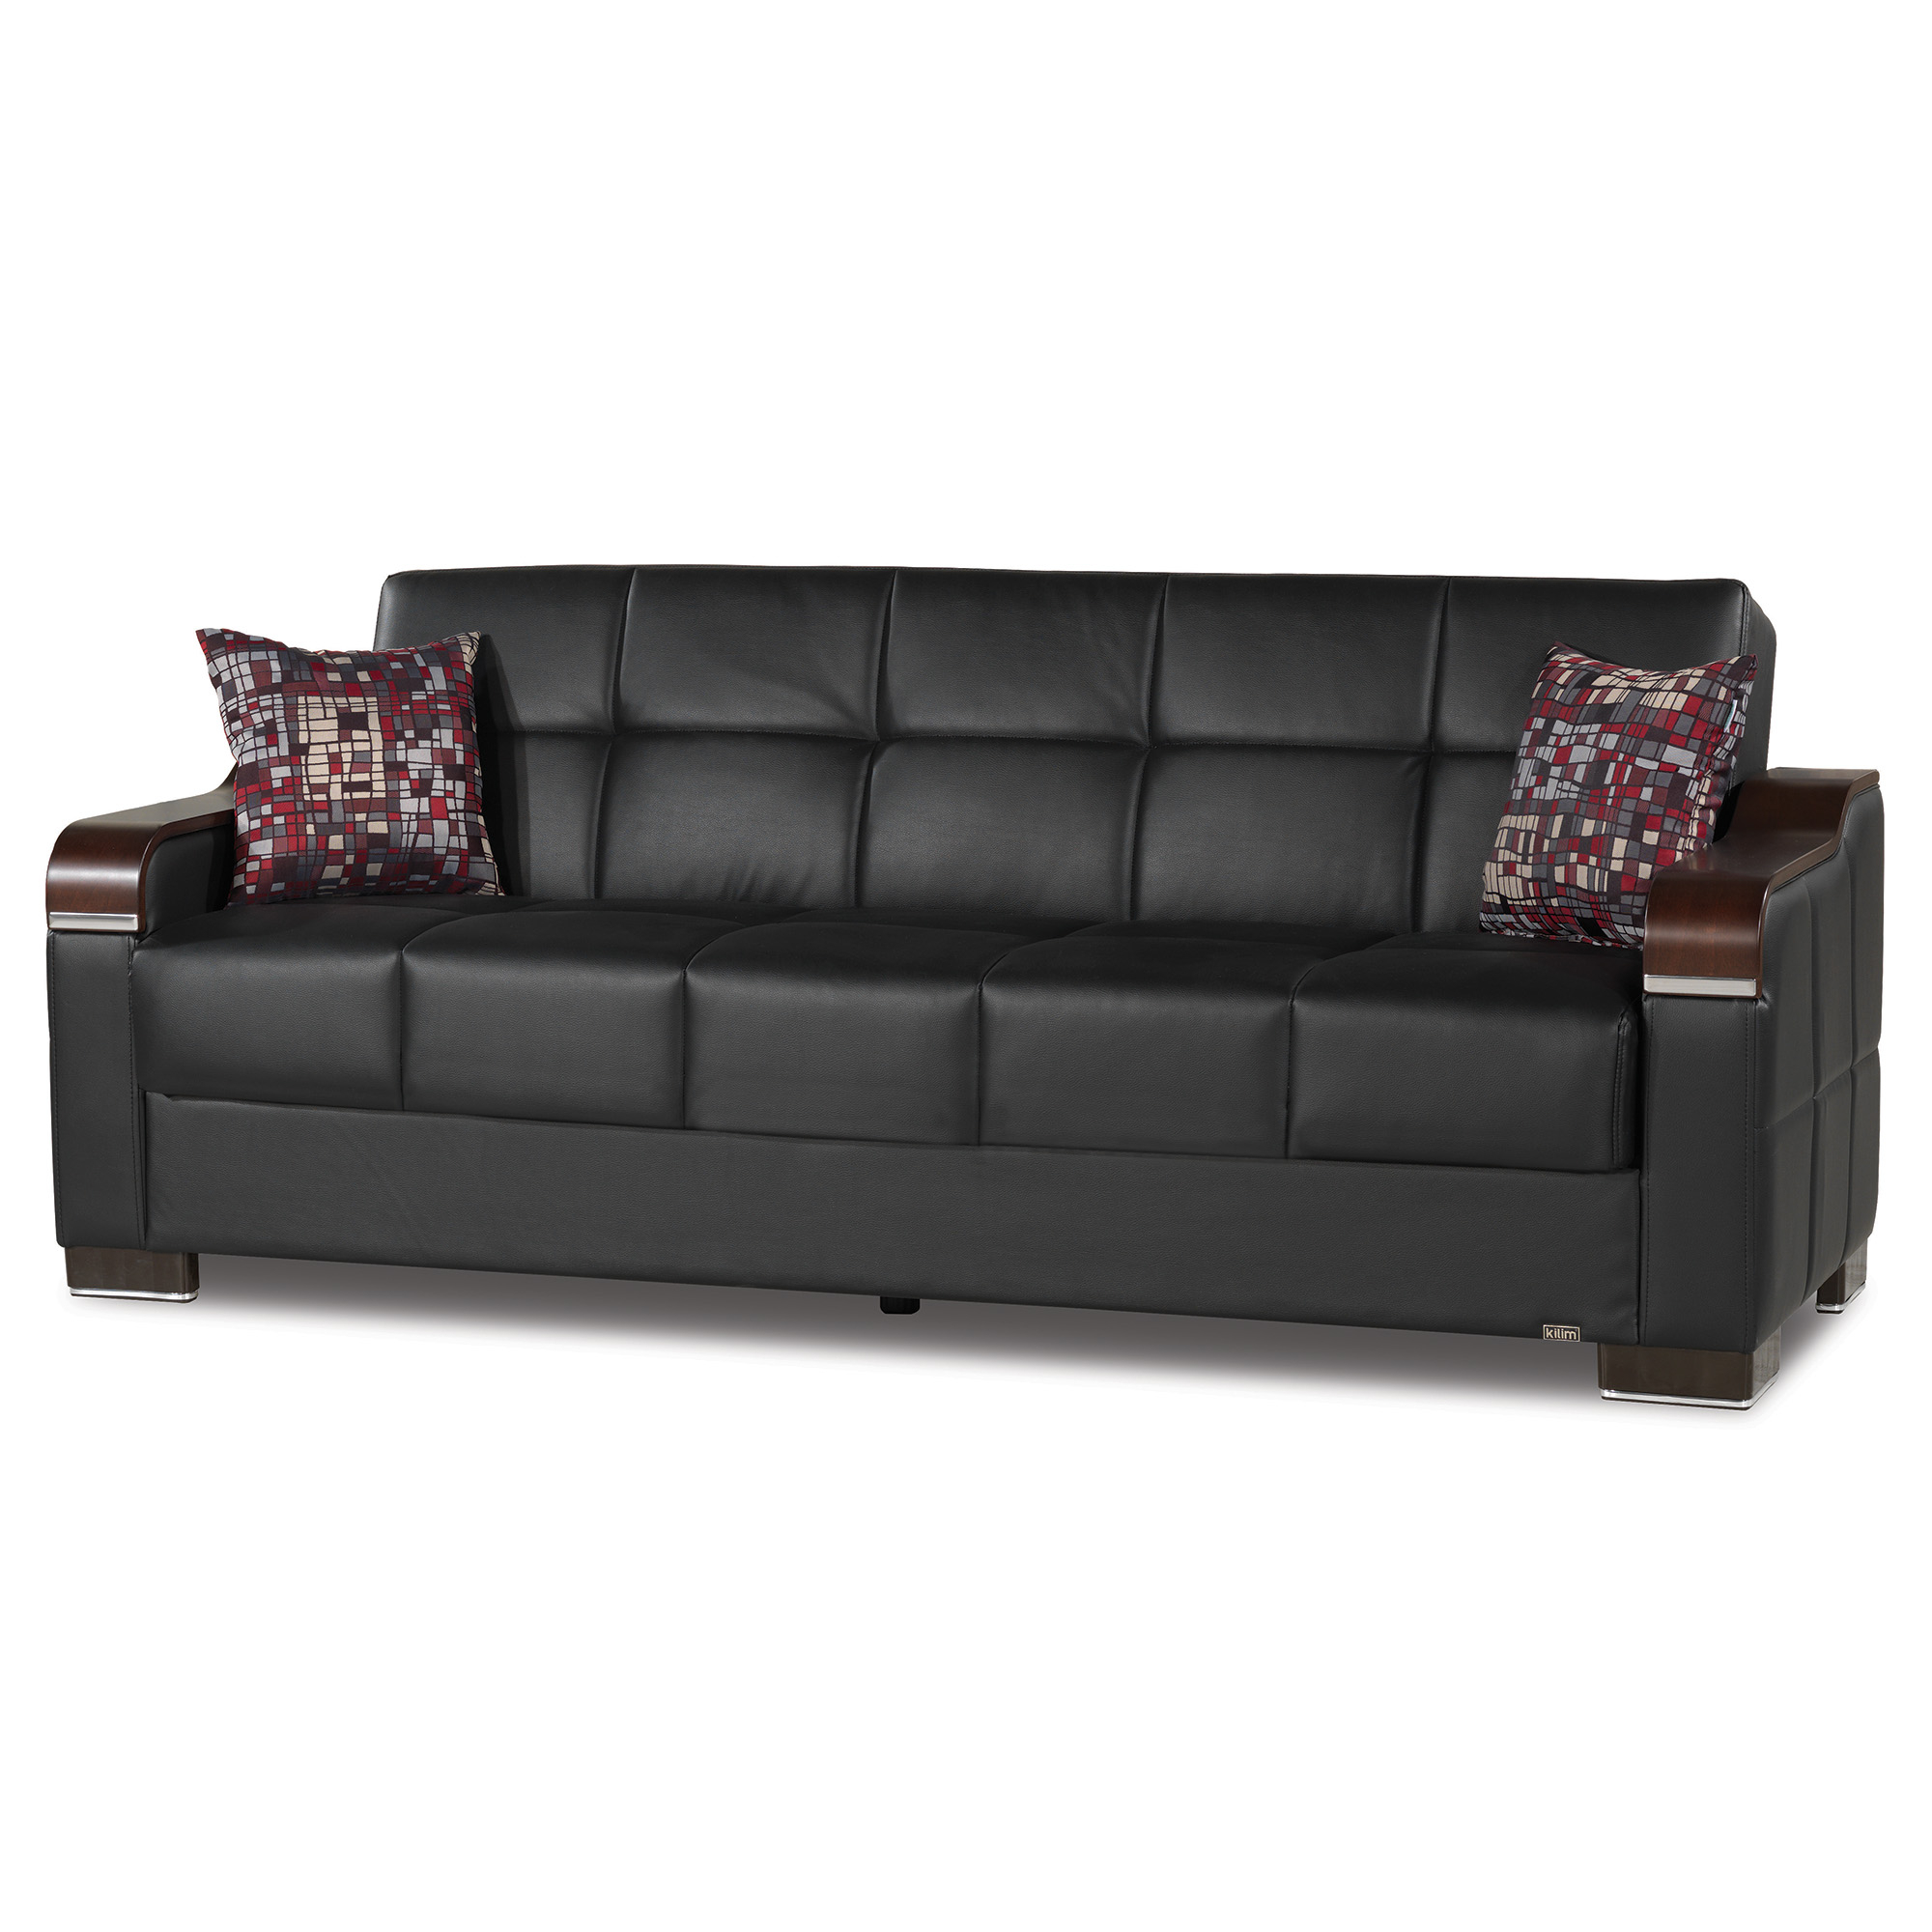 Uptown Leather Wooden Accent Arm Sleeper Sofa Bed With Pertaining To Hartford Storage Sectional Futon Sofas (View 2 of 15)